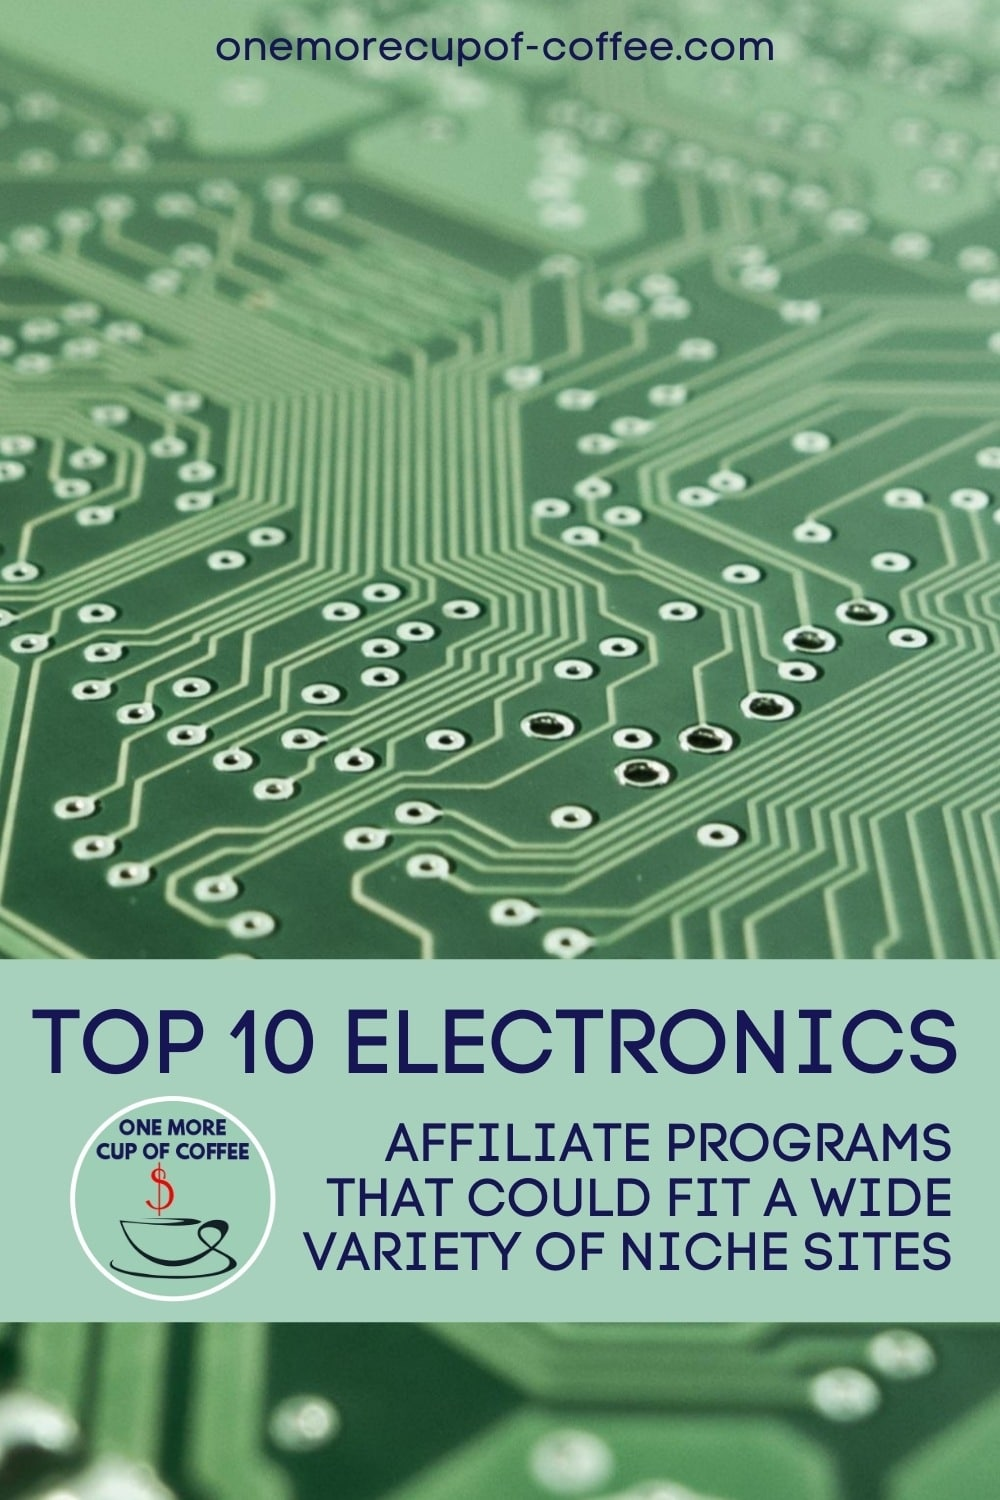 """closeup image of a circuit board, with text overlay """"Top 10 Electronics Affiliate Programs That Could Fit A Wide Variety of Niche Sites"""""""